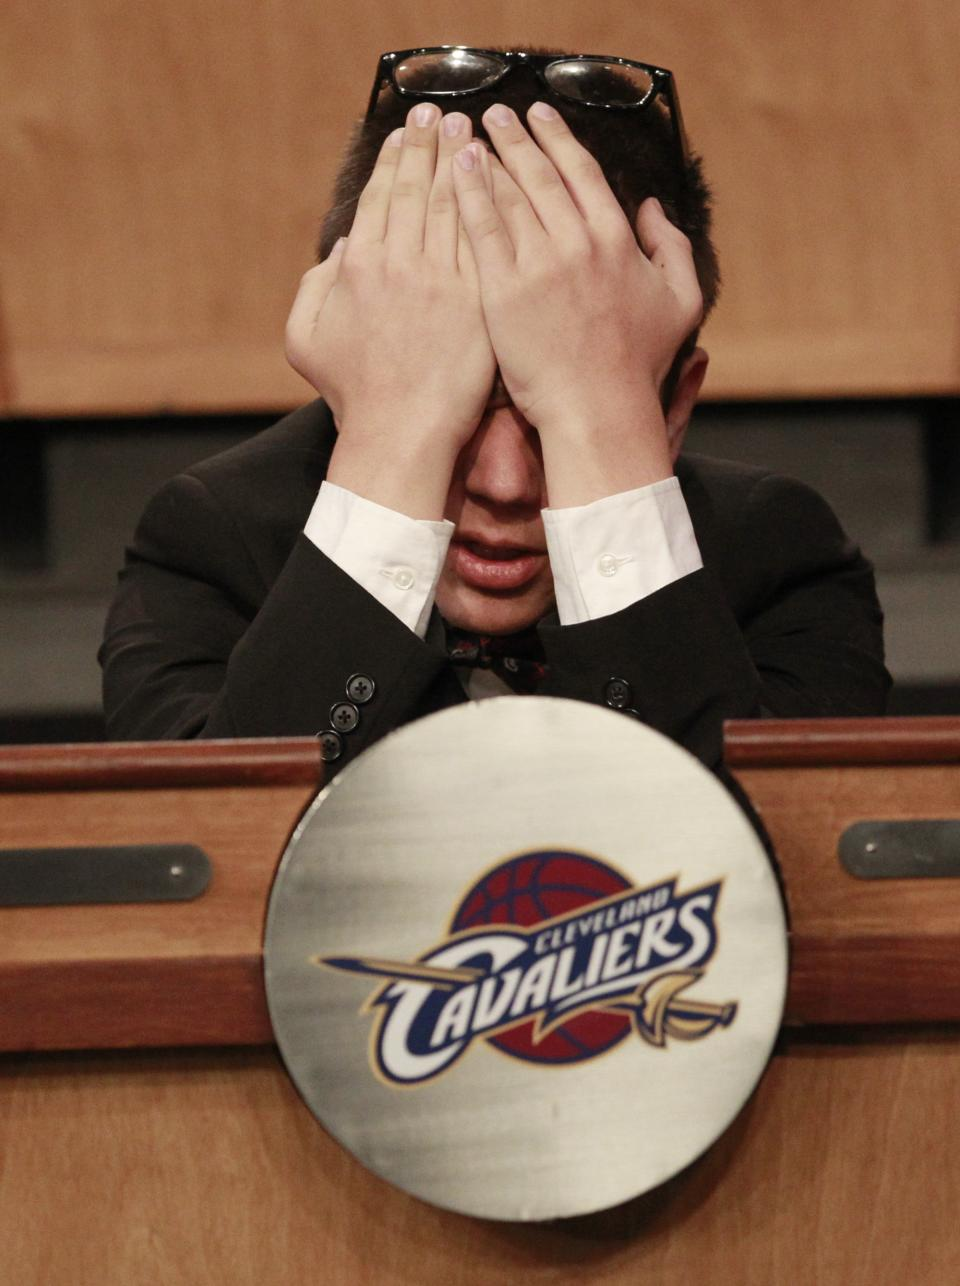 Nick Gilbert, 14, the son of Cleveland Cavaliers owner Dan Gilbert, covers his face prior to the start of the 2011 NBA basketball draft lottery, Tuesday, May 17, 2011 in Secaucus, N.J. Gilbert represented the Cavaliers, who won the lottery. (AP Photo/Julio Cortez)